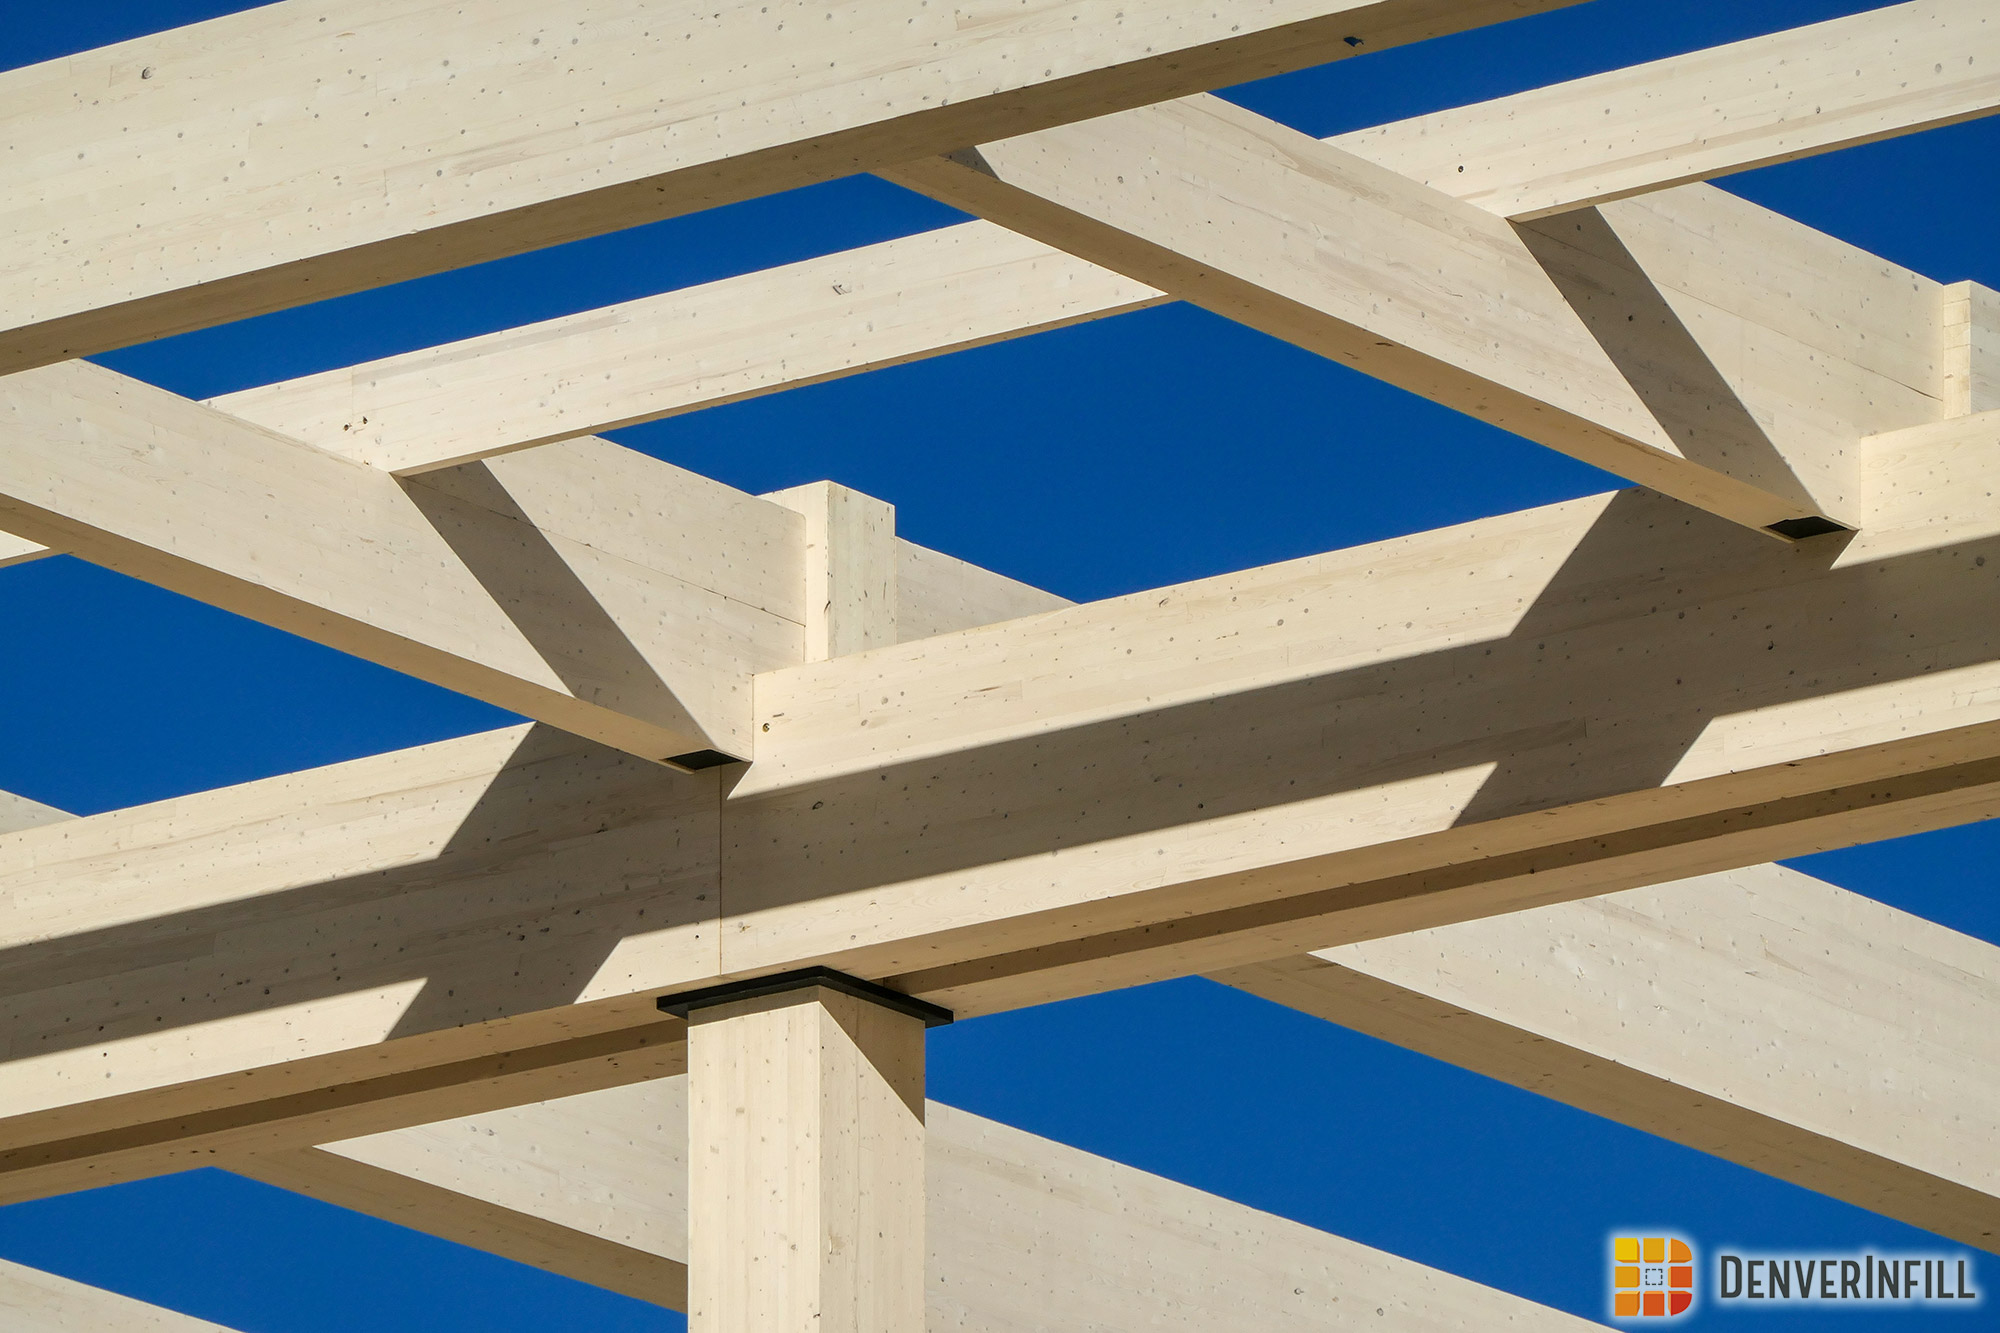 Cross laminated timber beams at Platte Fifteen